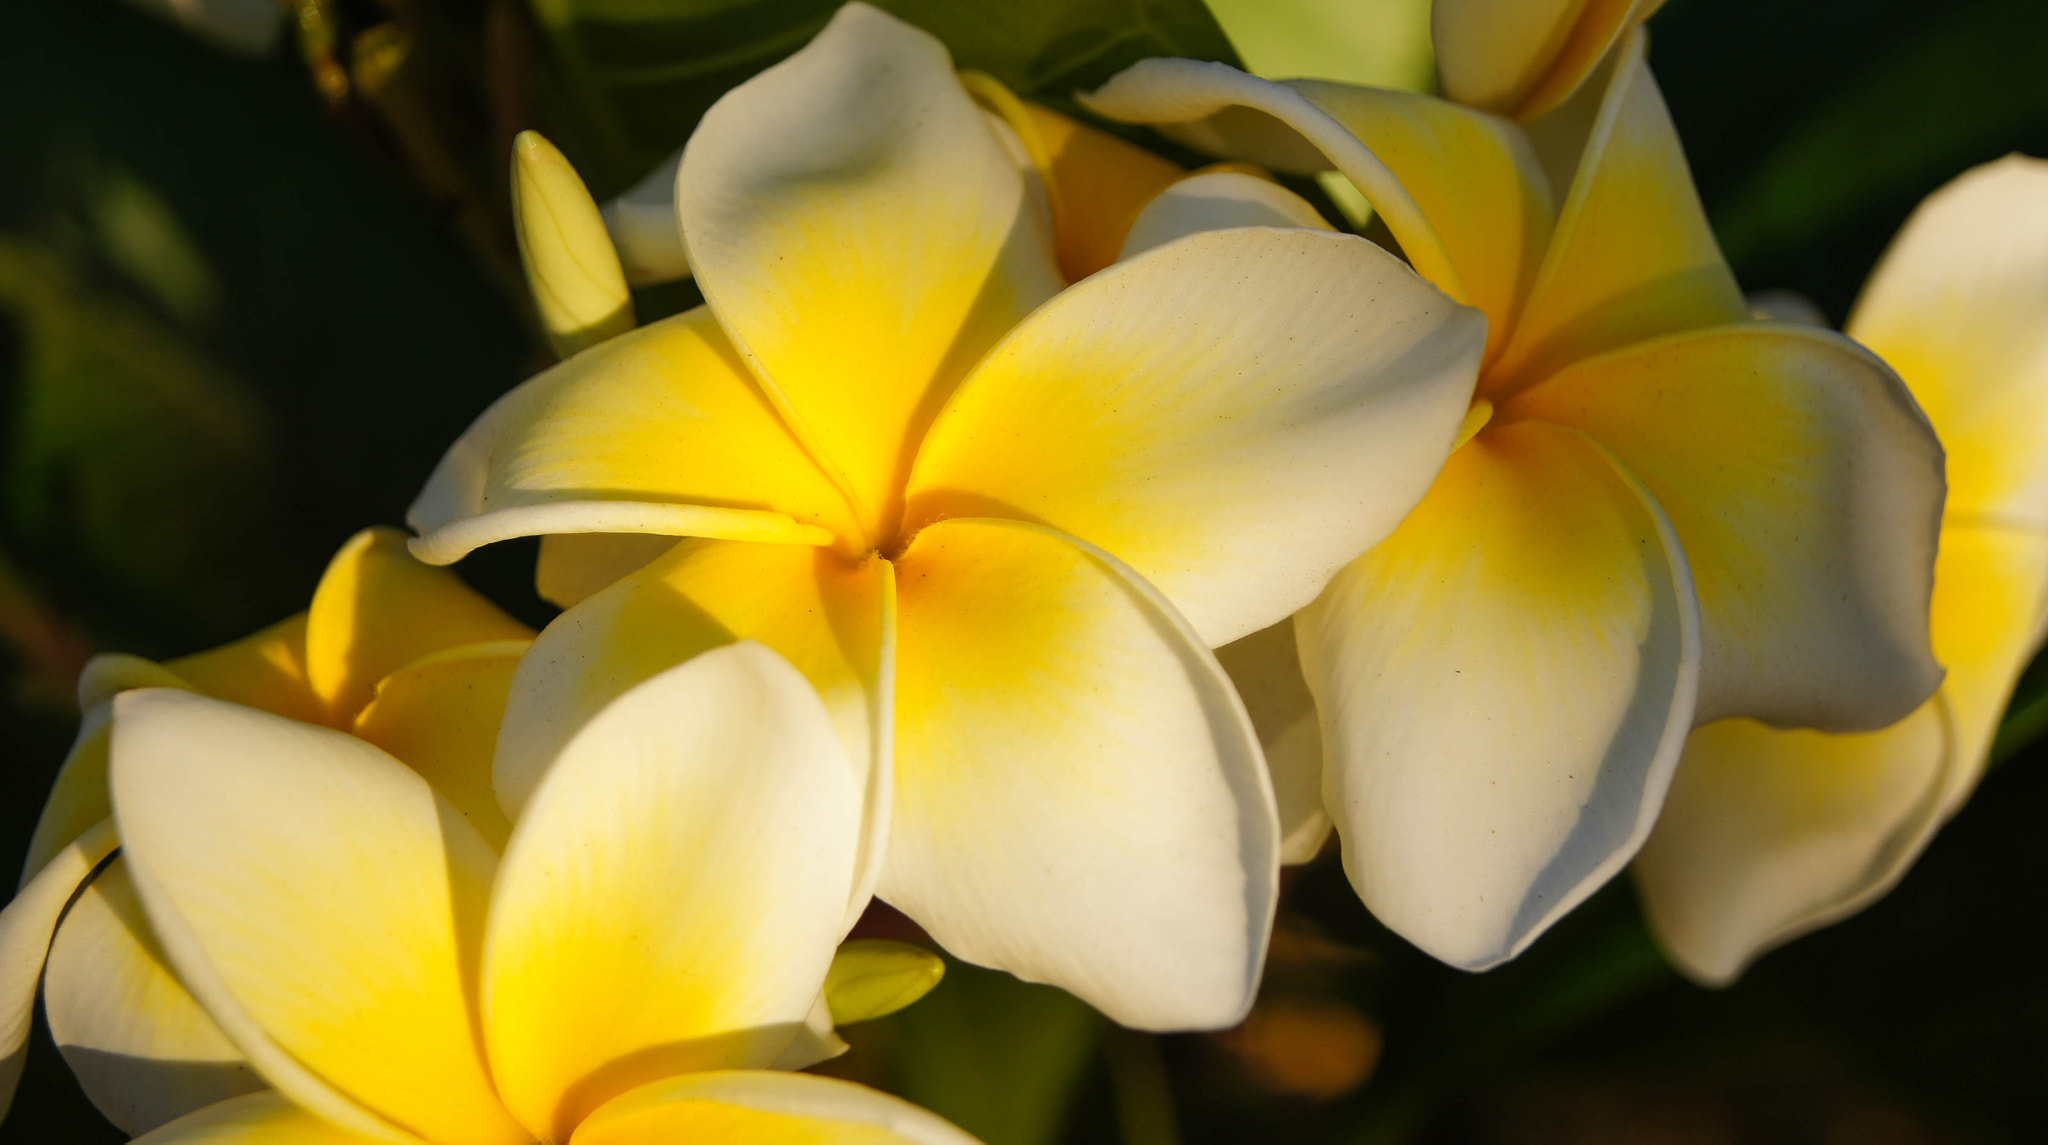 Photograph The Frangipani Next Door by Erik Anderson on 500px